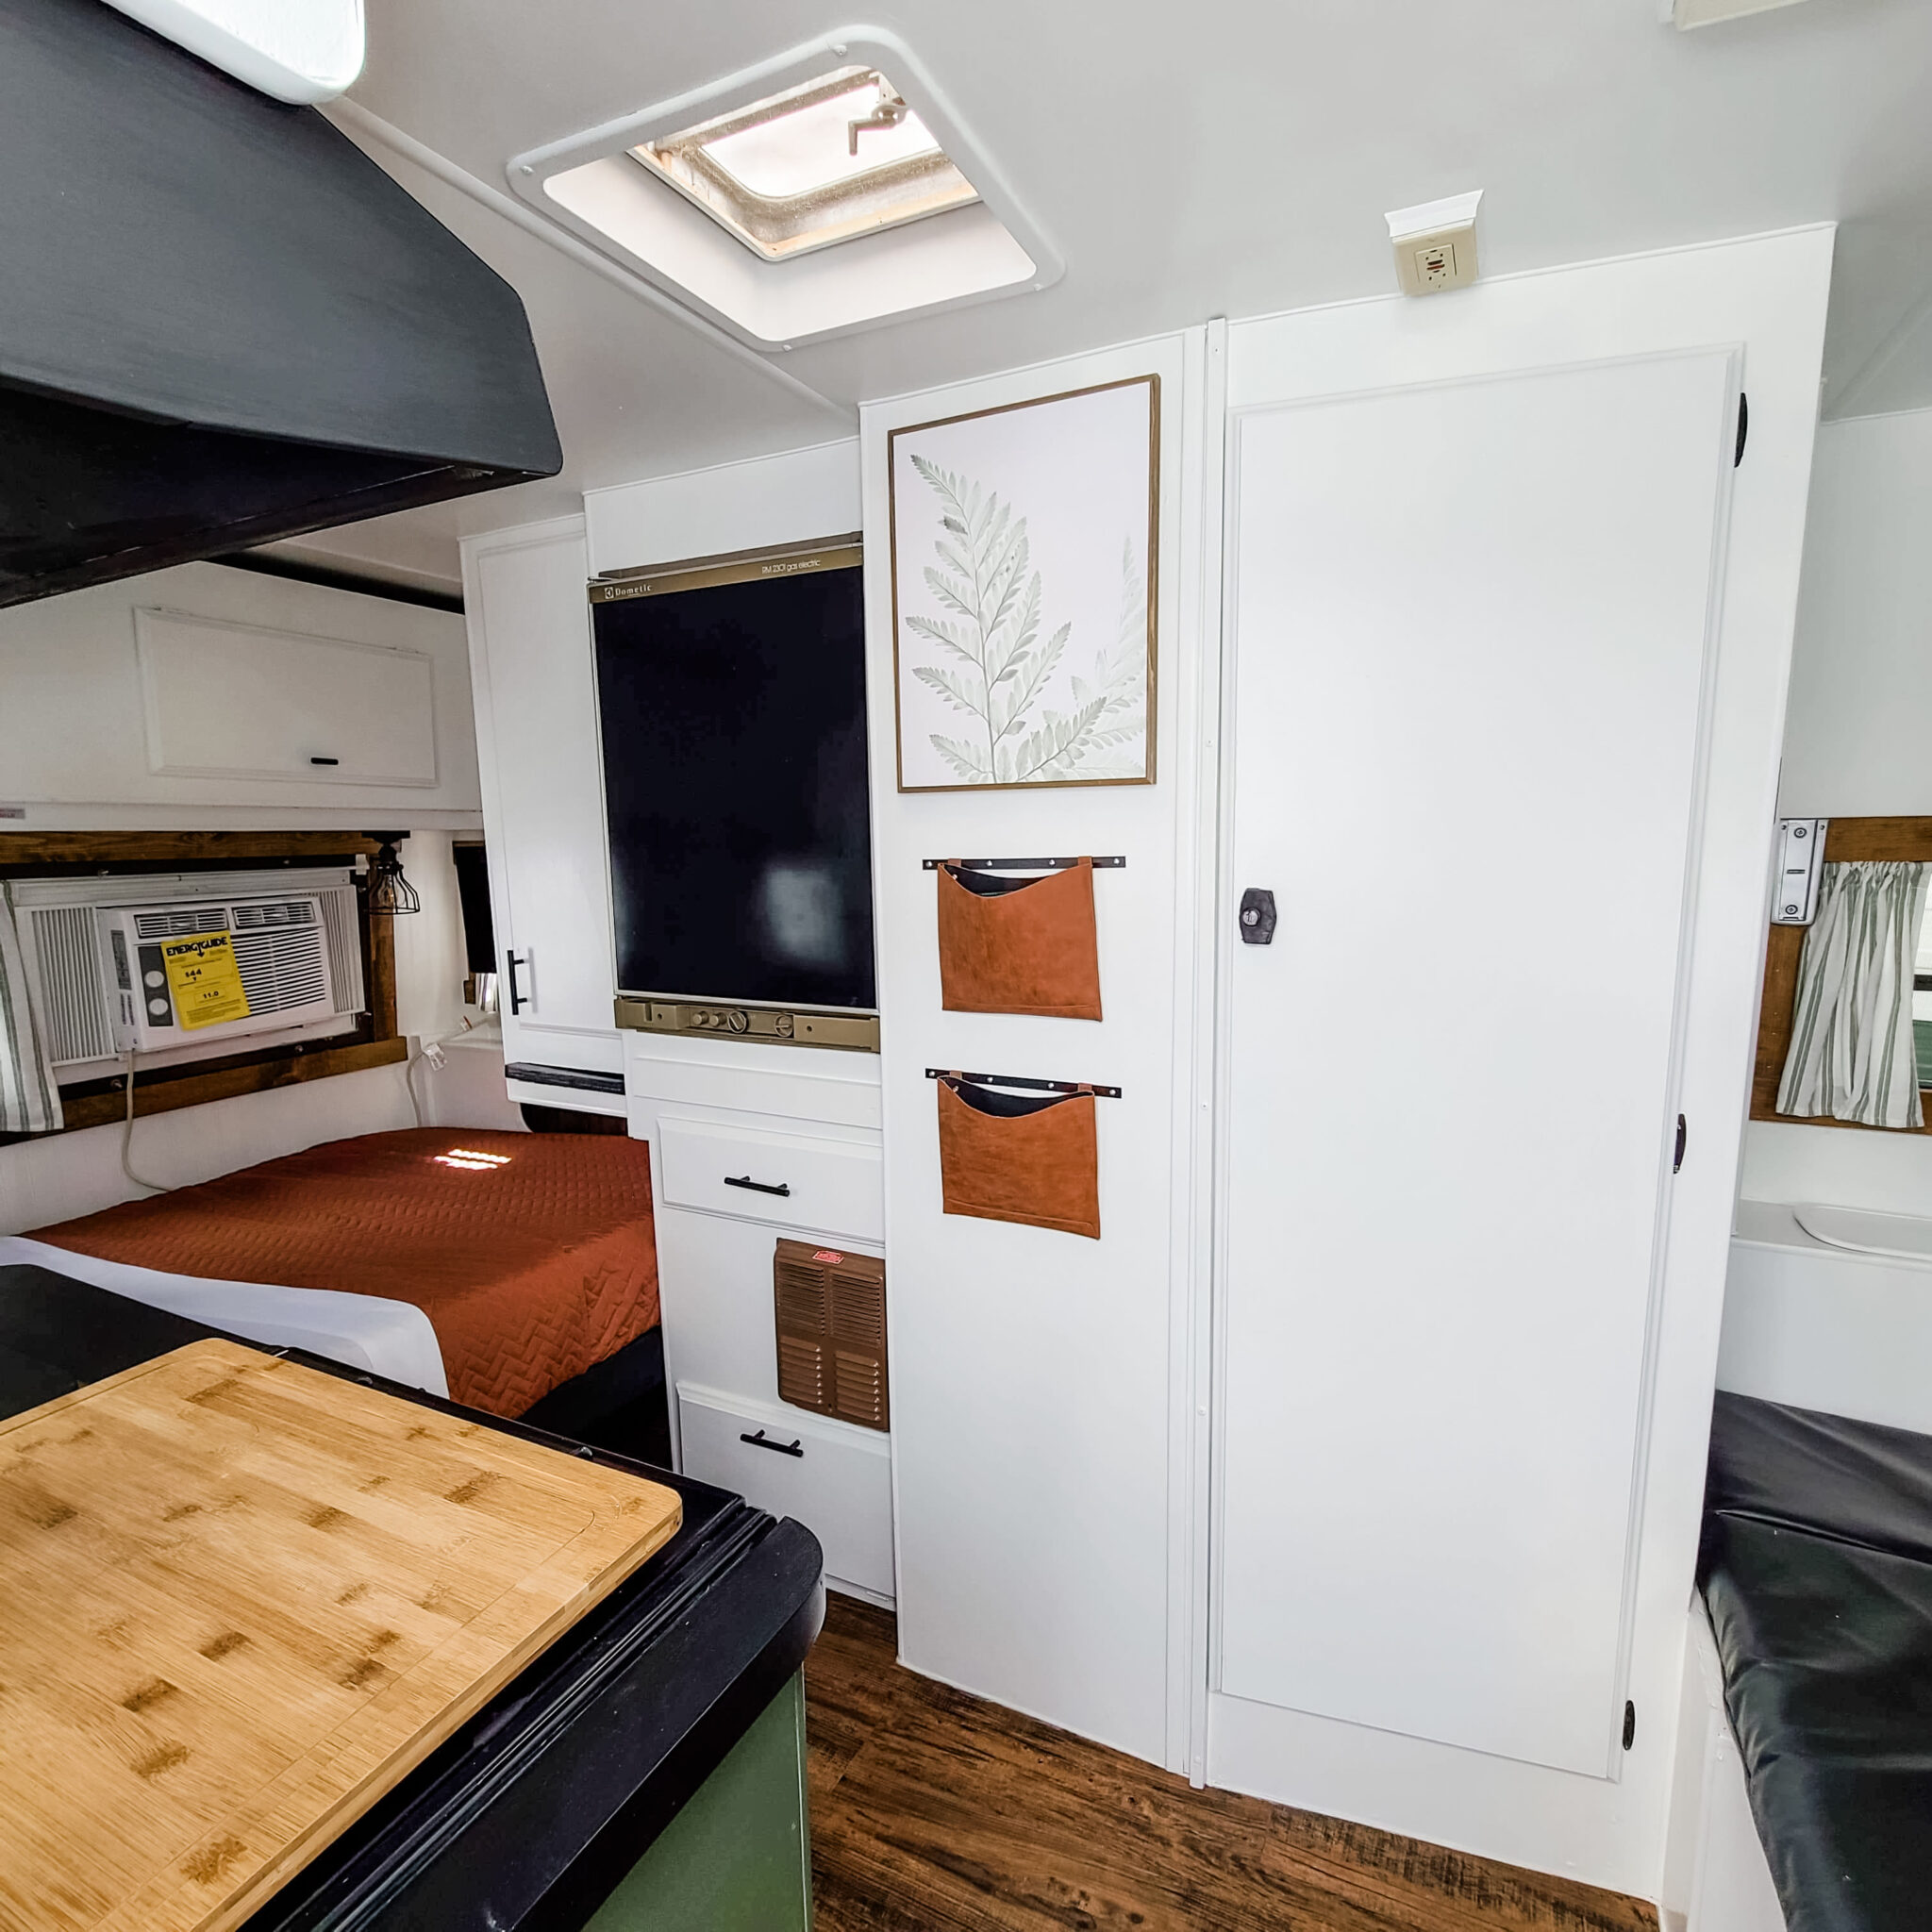 This Tiny Vintage Trailer was Transformed Into an Adorable Home on Wheels All Things with Purpose Sarah Lemp 28